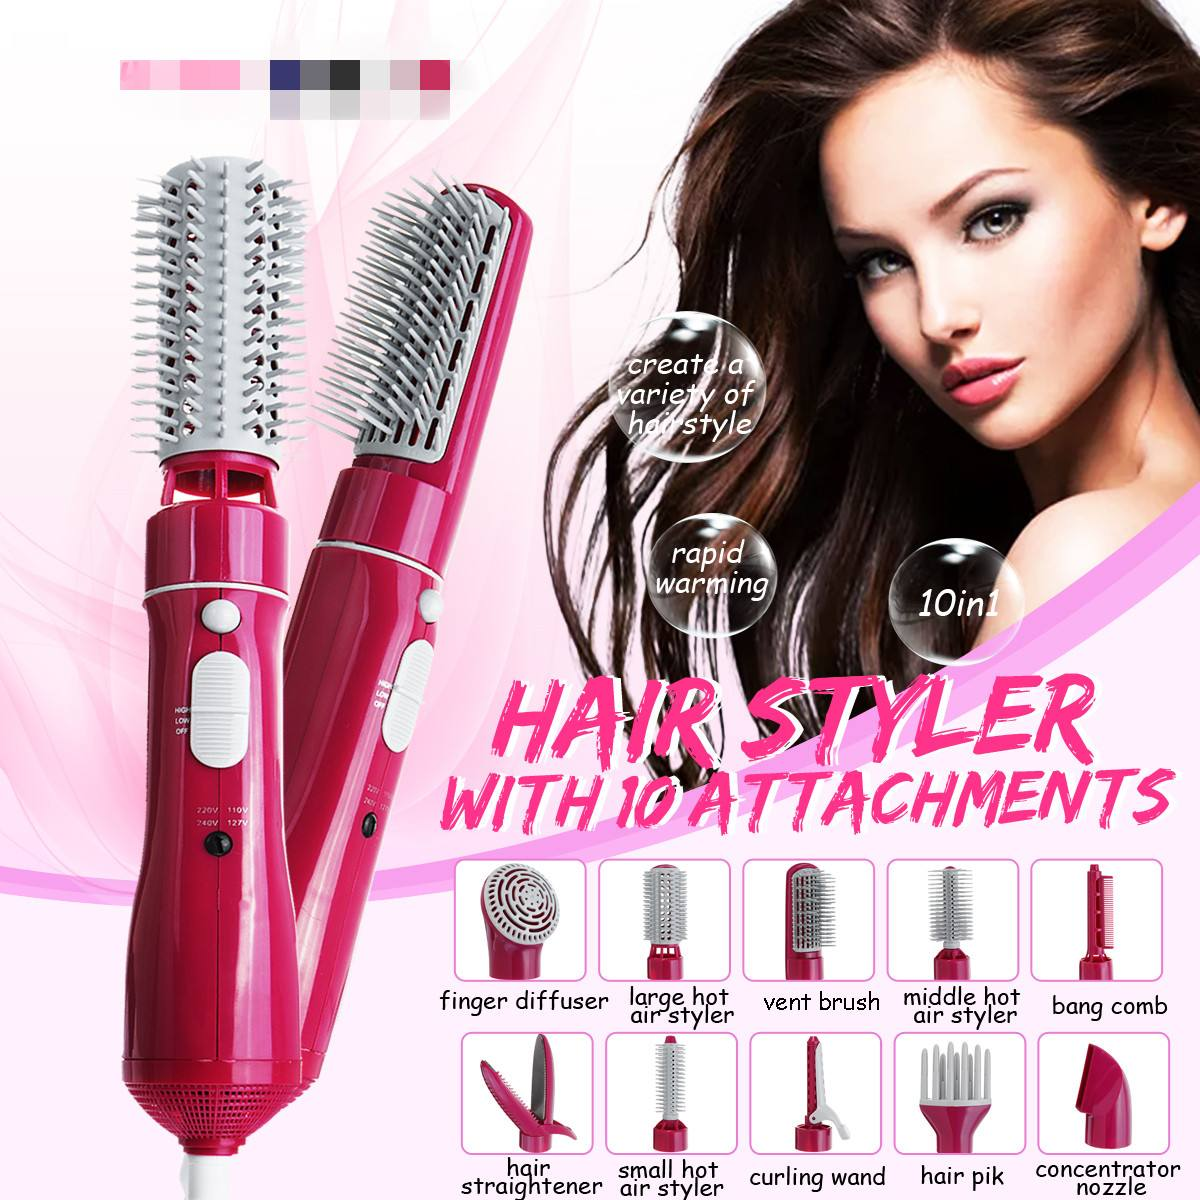 10in1 Electric Hair Dryer Blow Curler Set 110-220V With Combs Brushes Curler Multifunctional Salon Hair Styling Tool EU Plug10in1 Electric Hair Dryer Blow Curler Set 110-220V With Combs Brushes Curler Multifunctional Salon Hair Styling Tool EU Plug